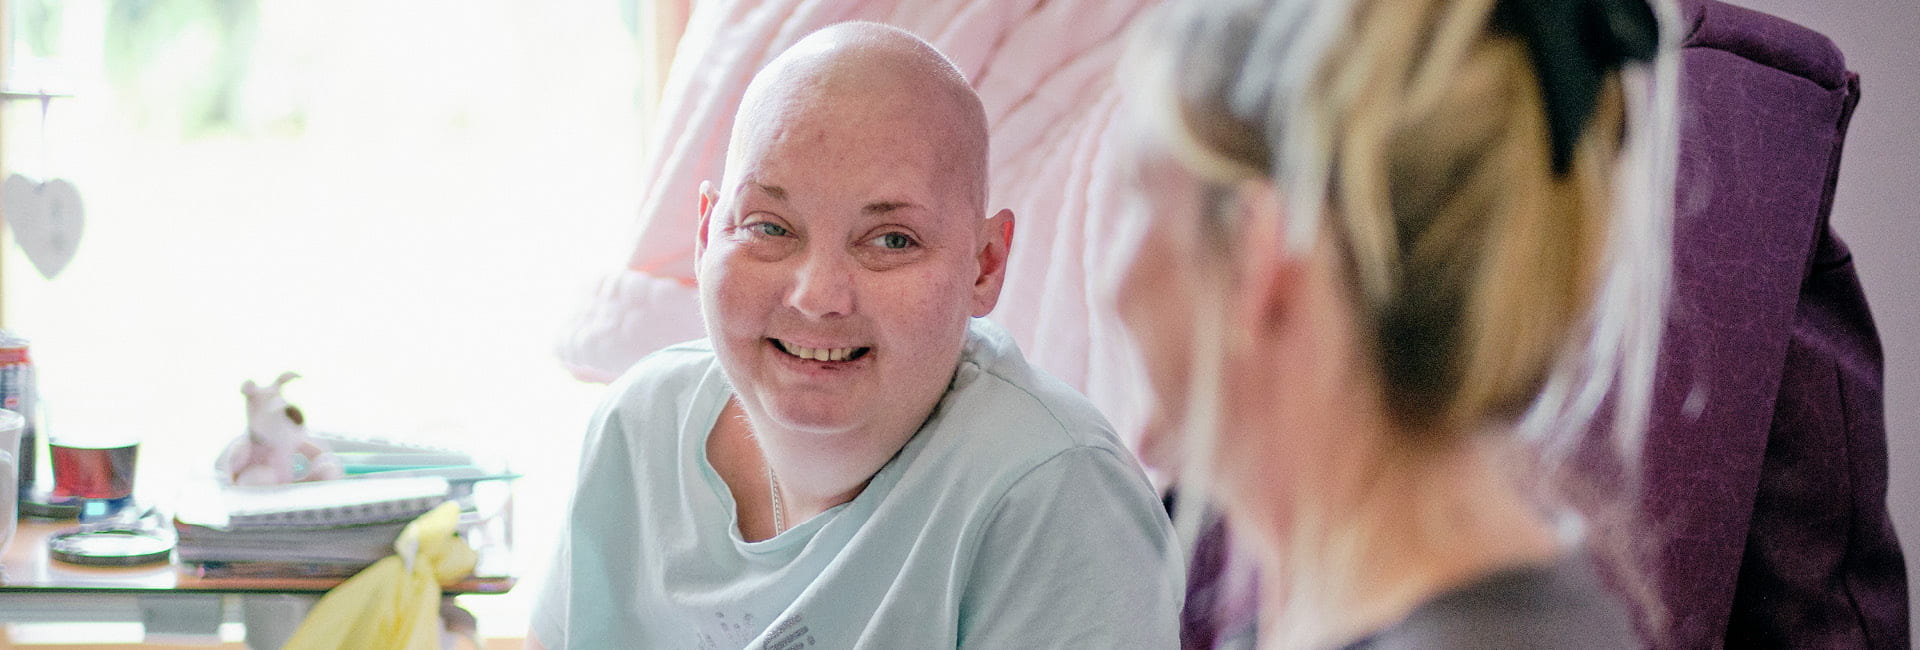 The Myton Hospices - Video Gallery - Warwickshire - Leamington Spa - Coventry - Rugby - Hospice